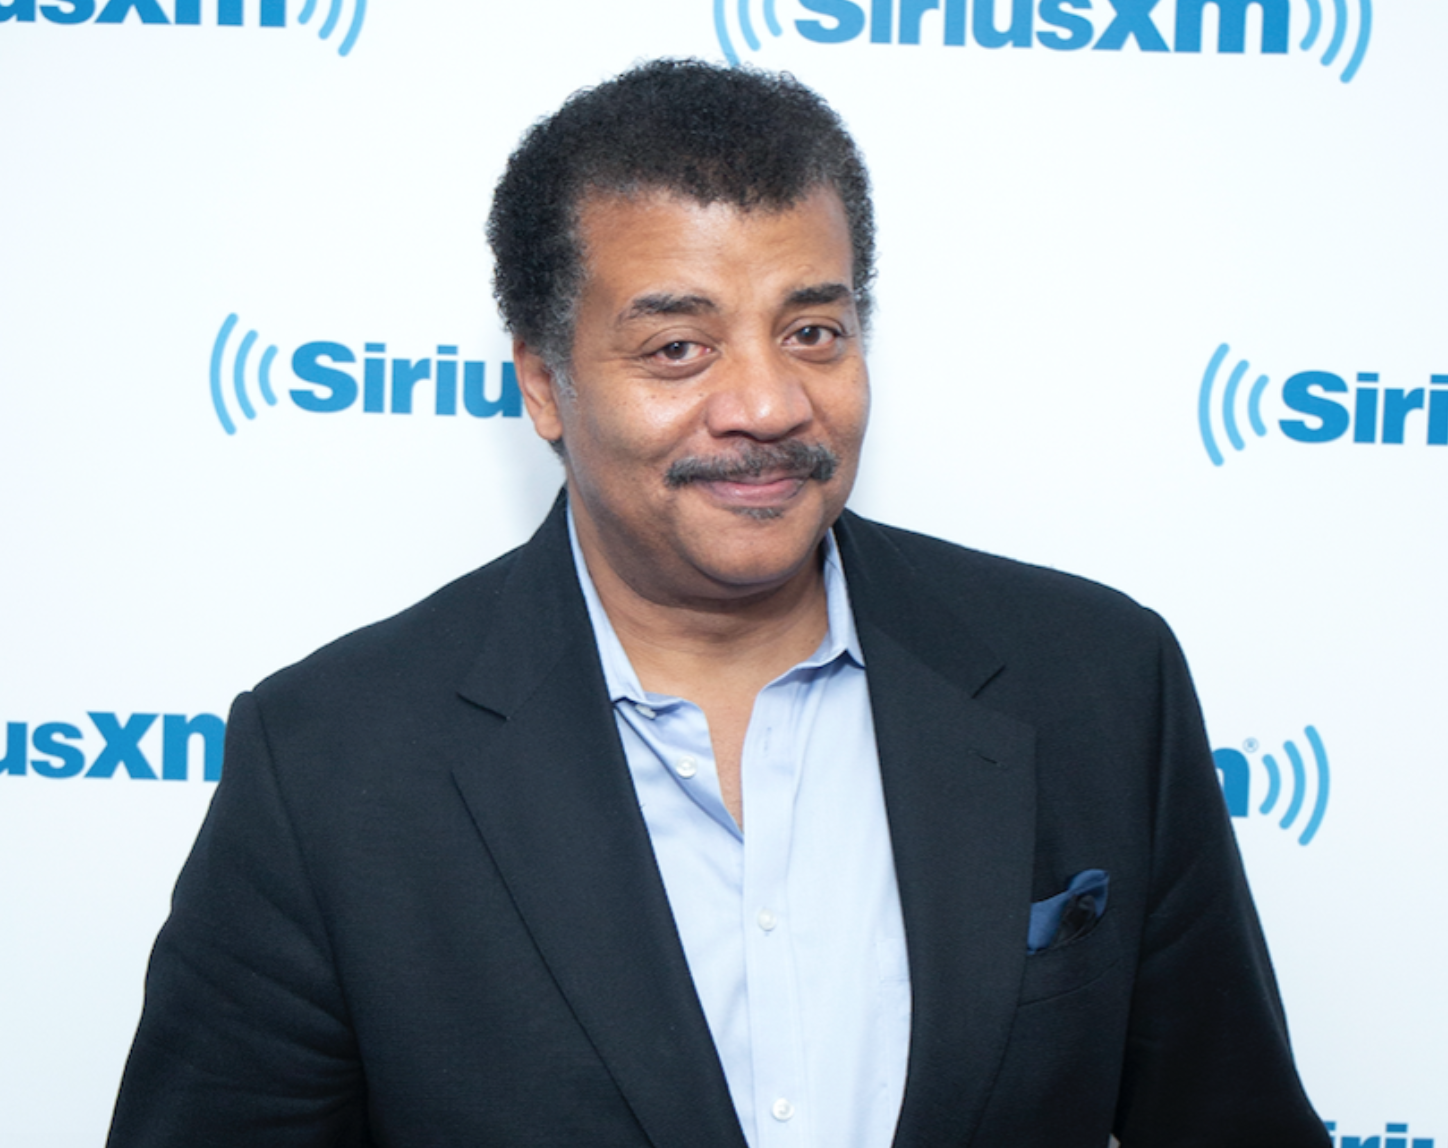 Neil deGrasse Tyson on Thanos